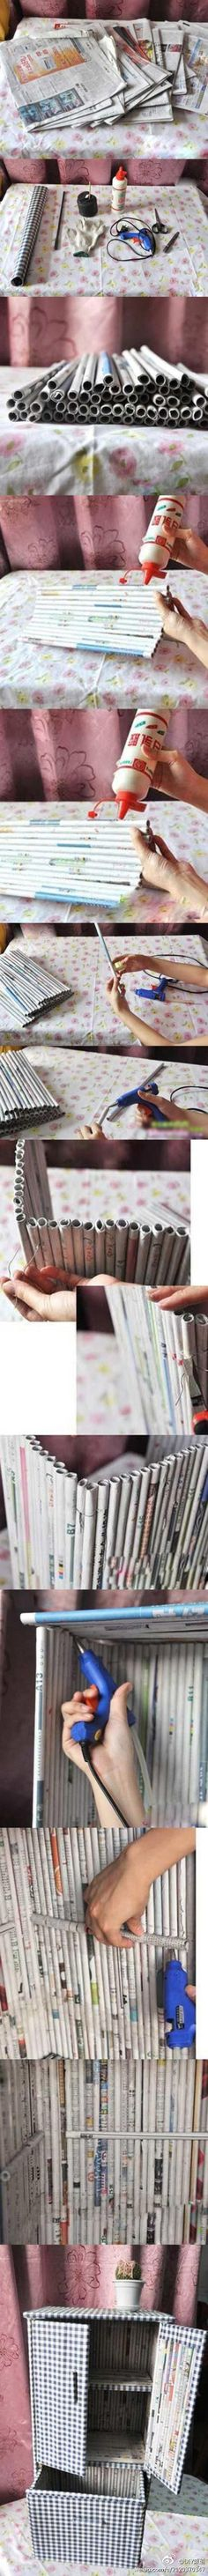 DIY Furniture diy home made easy crafts craft idea crafts ideas diy ideas diy crafts diy idea do it yourself diy projects diy furniture crafts. diy crafts oder als Häuschen, Kiste… – Furniture home made easy crafts craft idea crafts ideas id Recycle Newspaper, Newspaper Crafts, Newspaper Basket, Diy Paper, Paper Crafting, Easy Crafts, Diy And Crafts, Creative Crafts, Easy Diy